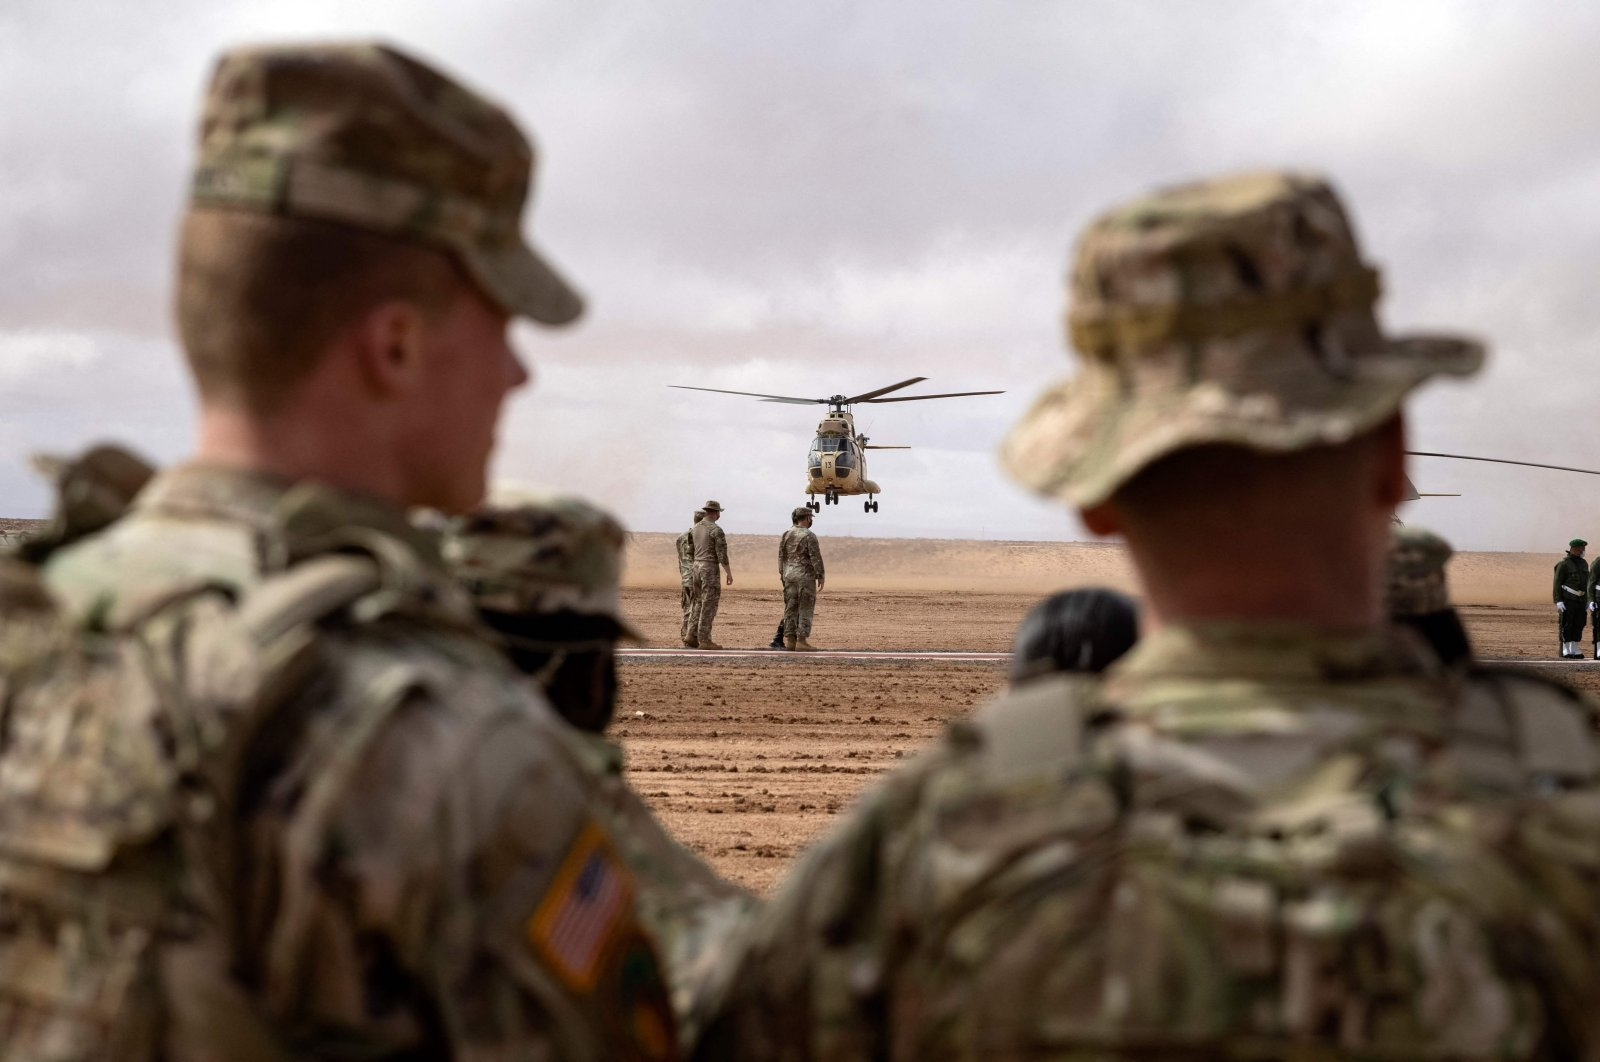 """U.S. military personnel look on as CH-47 Chinook military helicopters take off during the """"African Lion"""" military exercise in the Tan-Tan region in southwestern Morocco, June 18, 2021. (AFP Photo)"""